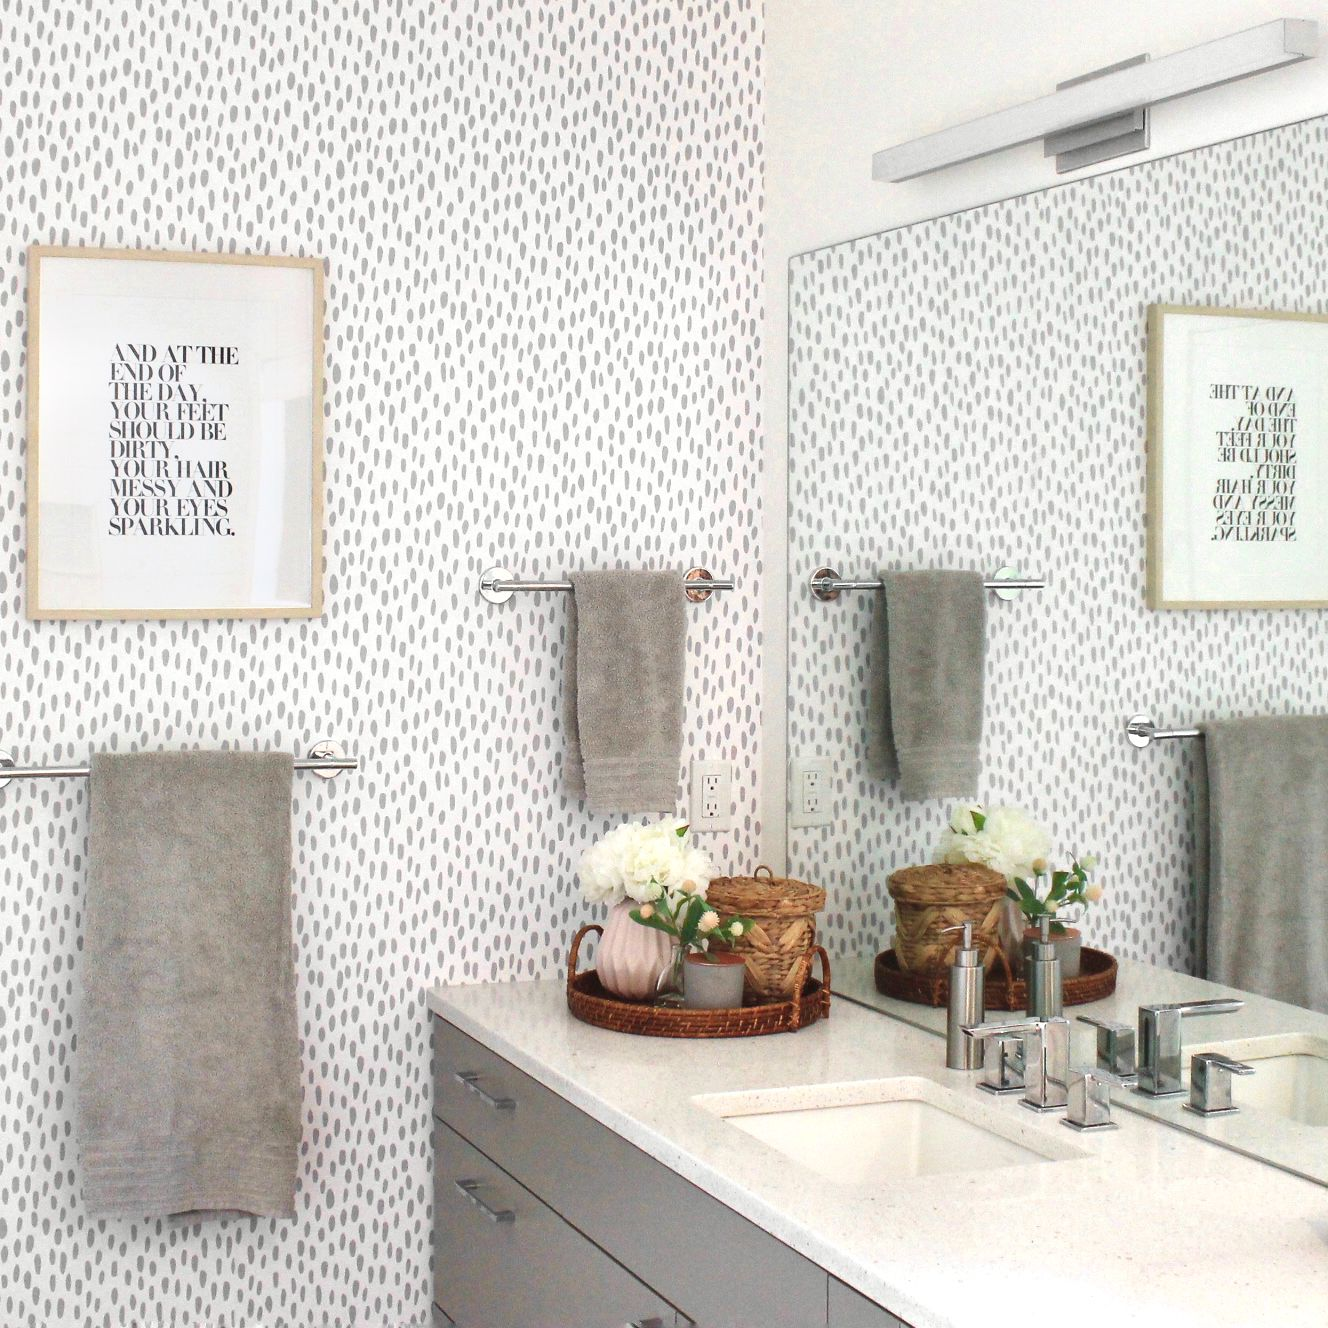 11 Classic Gray and White Bathrooms